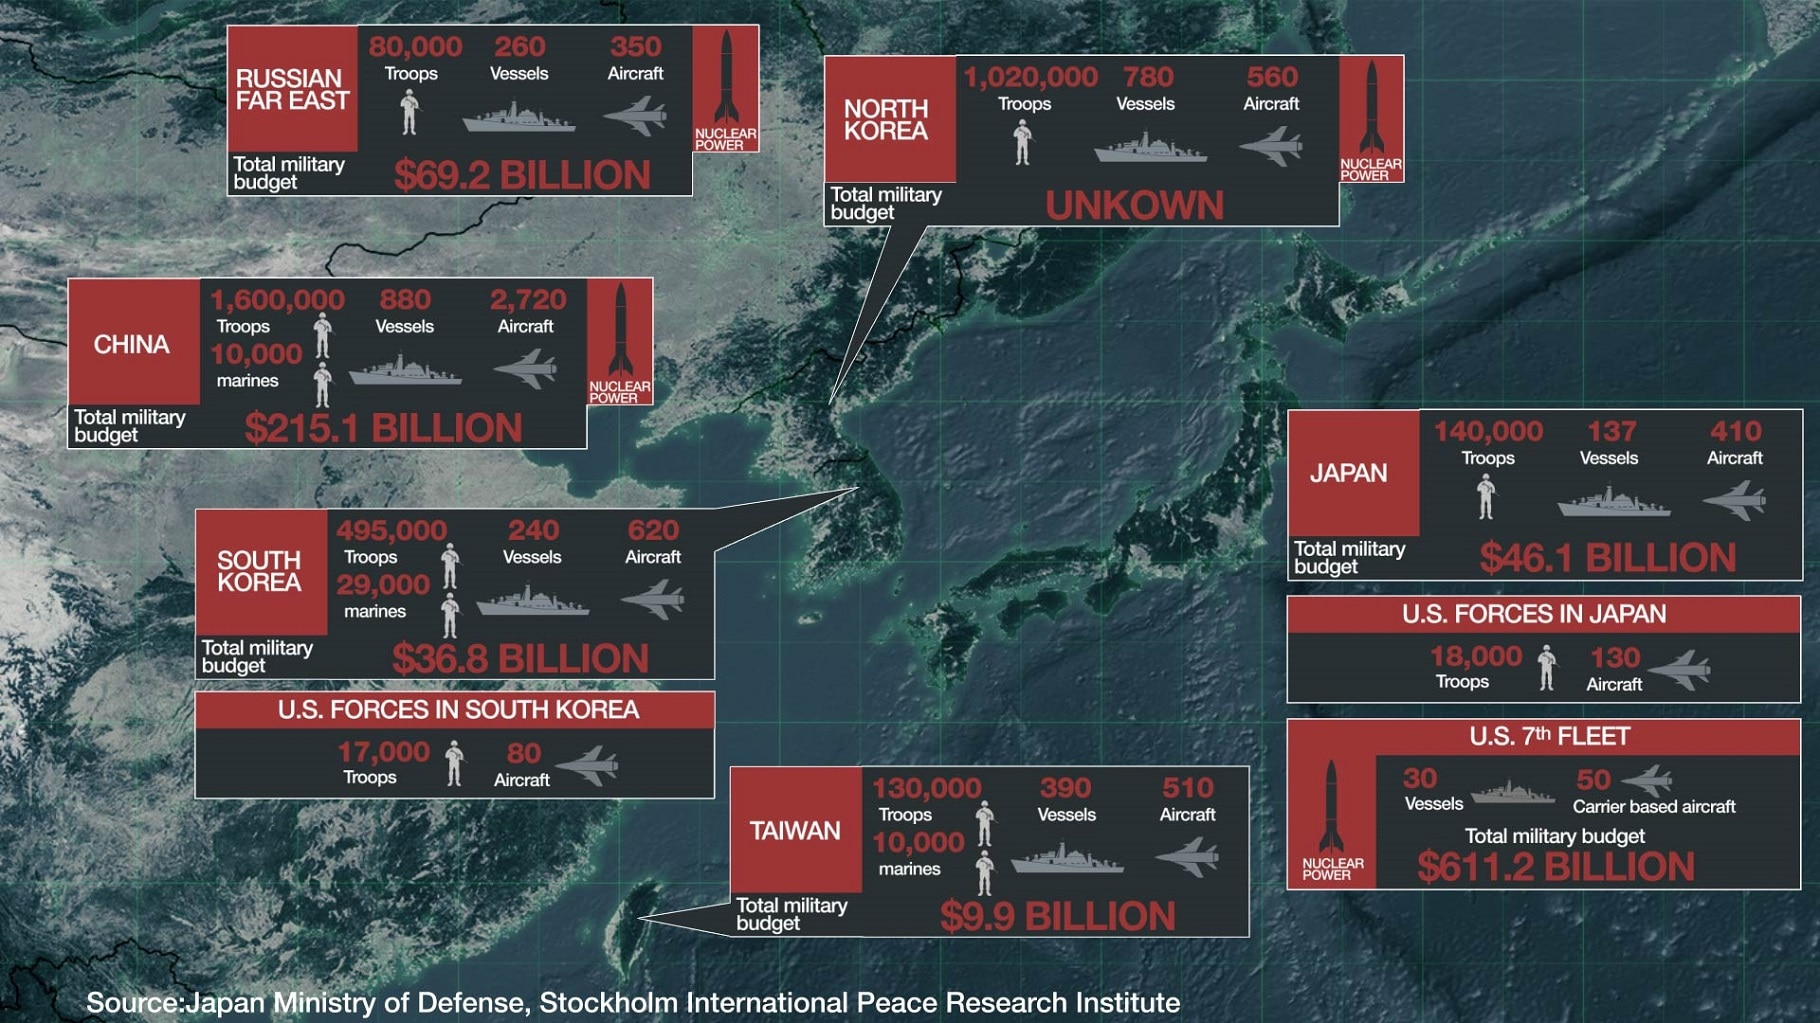 Military forces in Northeast Asia